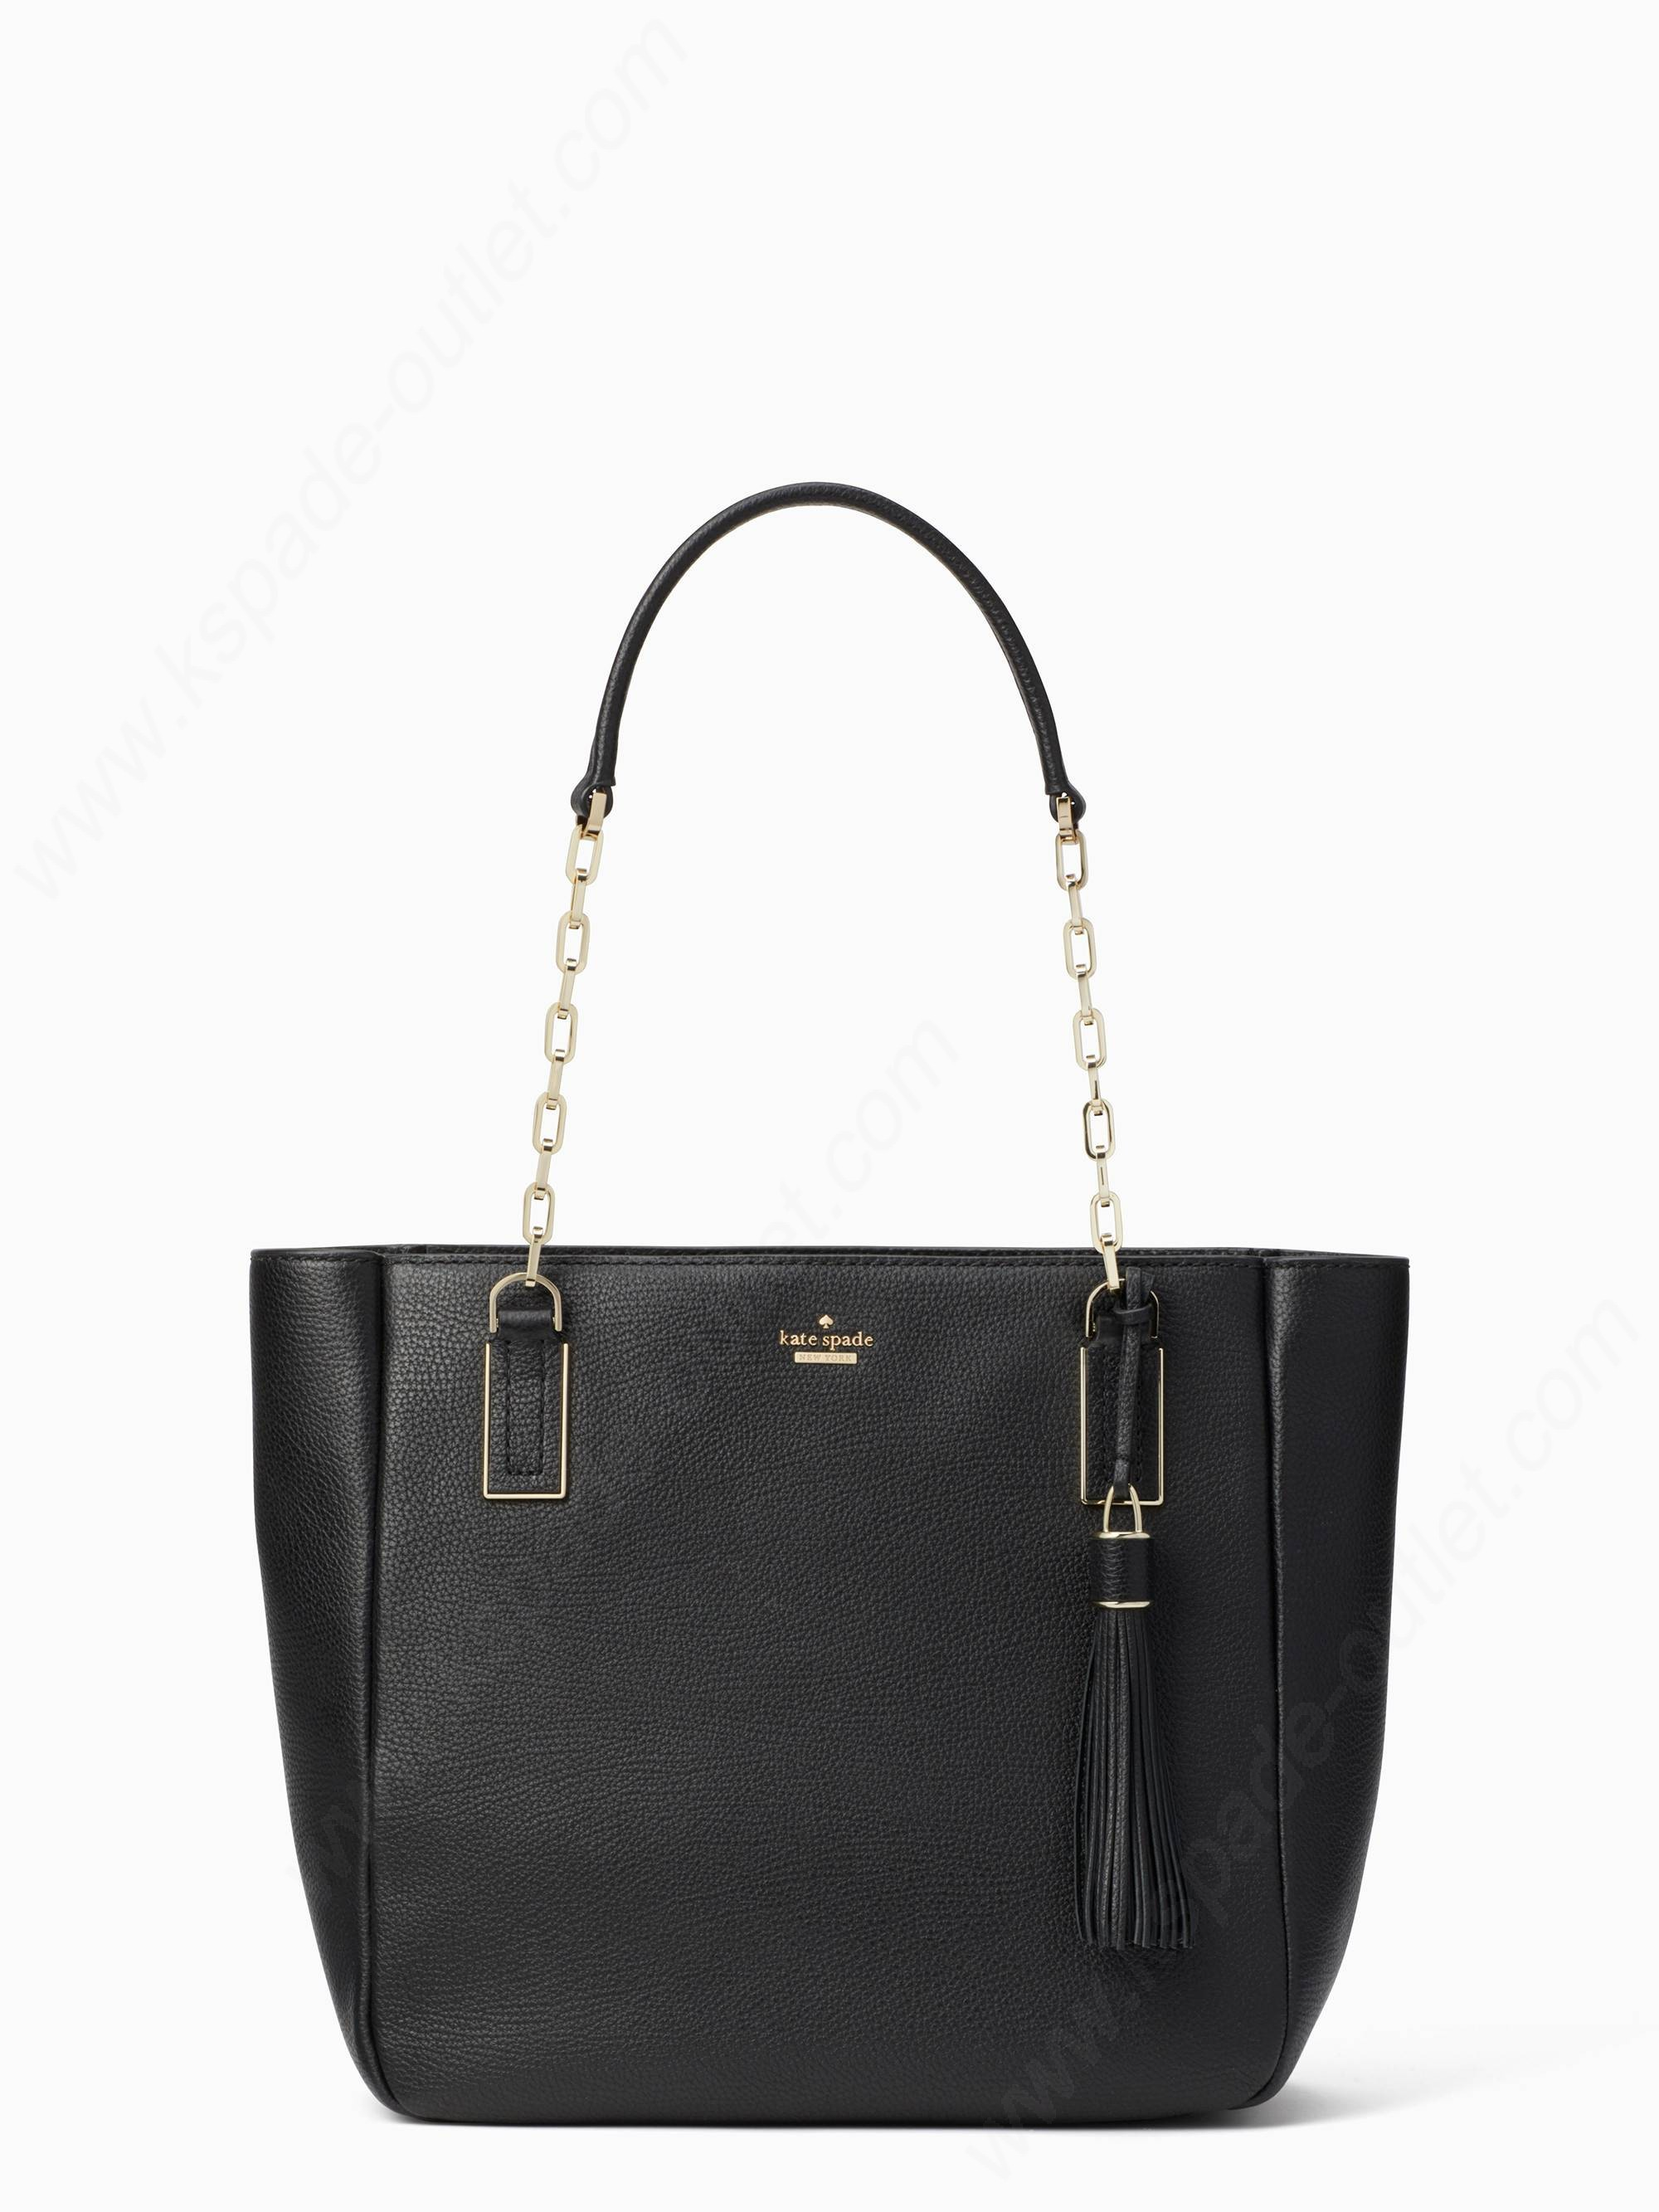 Kate Spade Womens Handbags Kingston Drive Vivian - Kate Spade Womens Handbags Kingston Drive Vivian